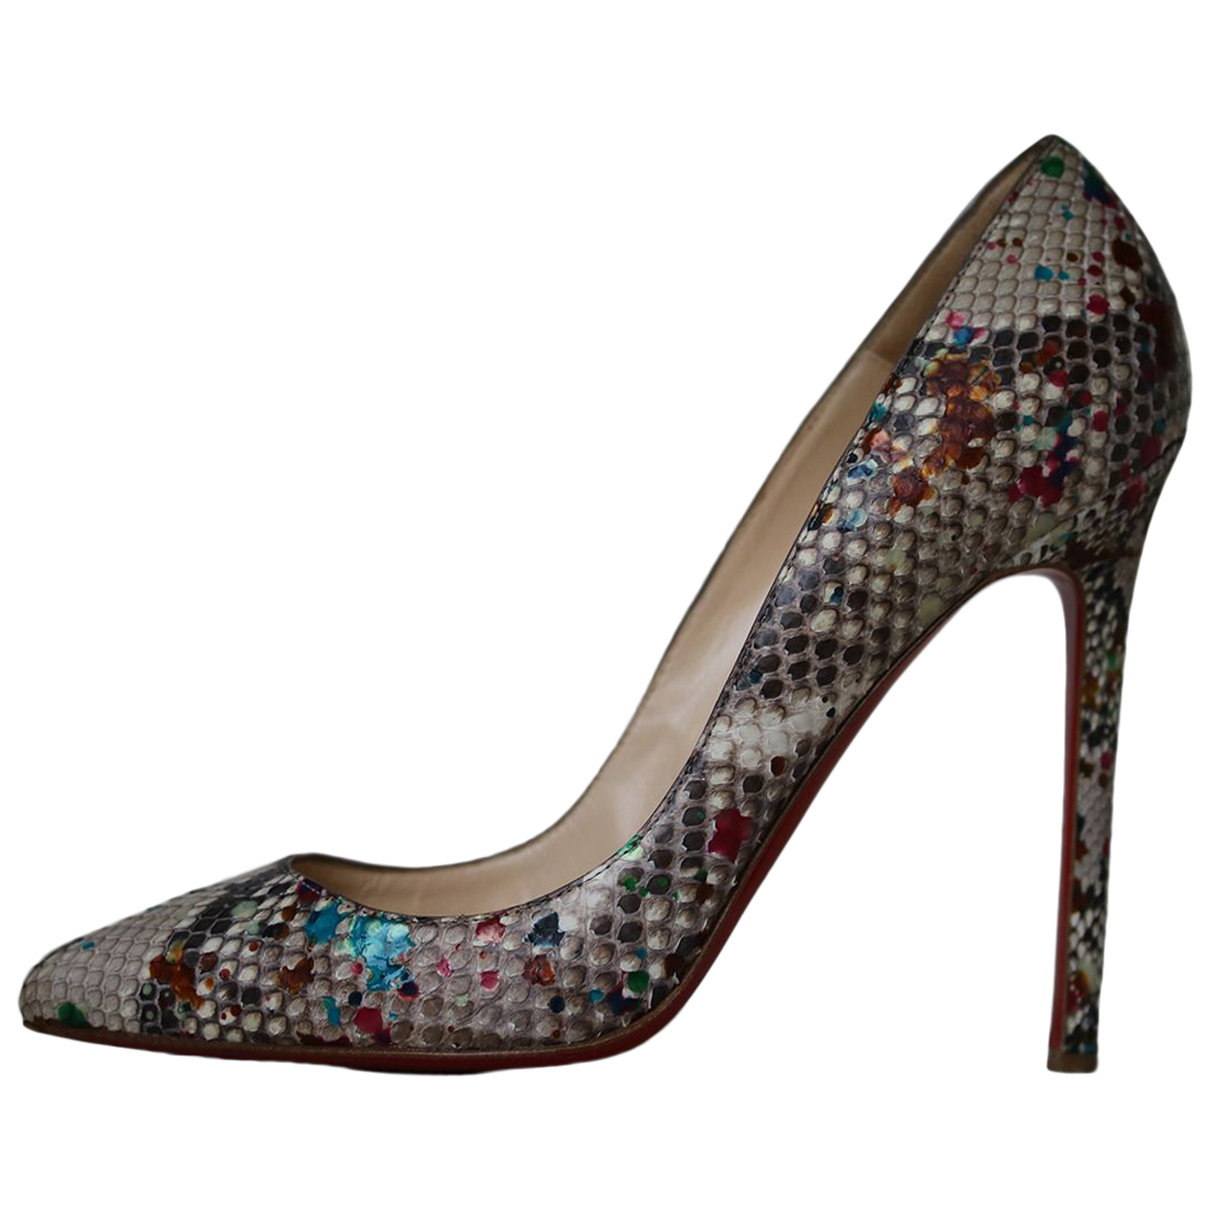 Christian Louboutin N Multicolour Exotic leathers Heels for Women 37.5 EU